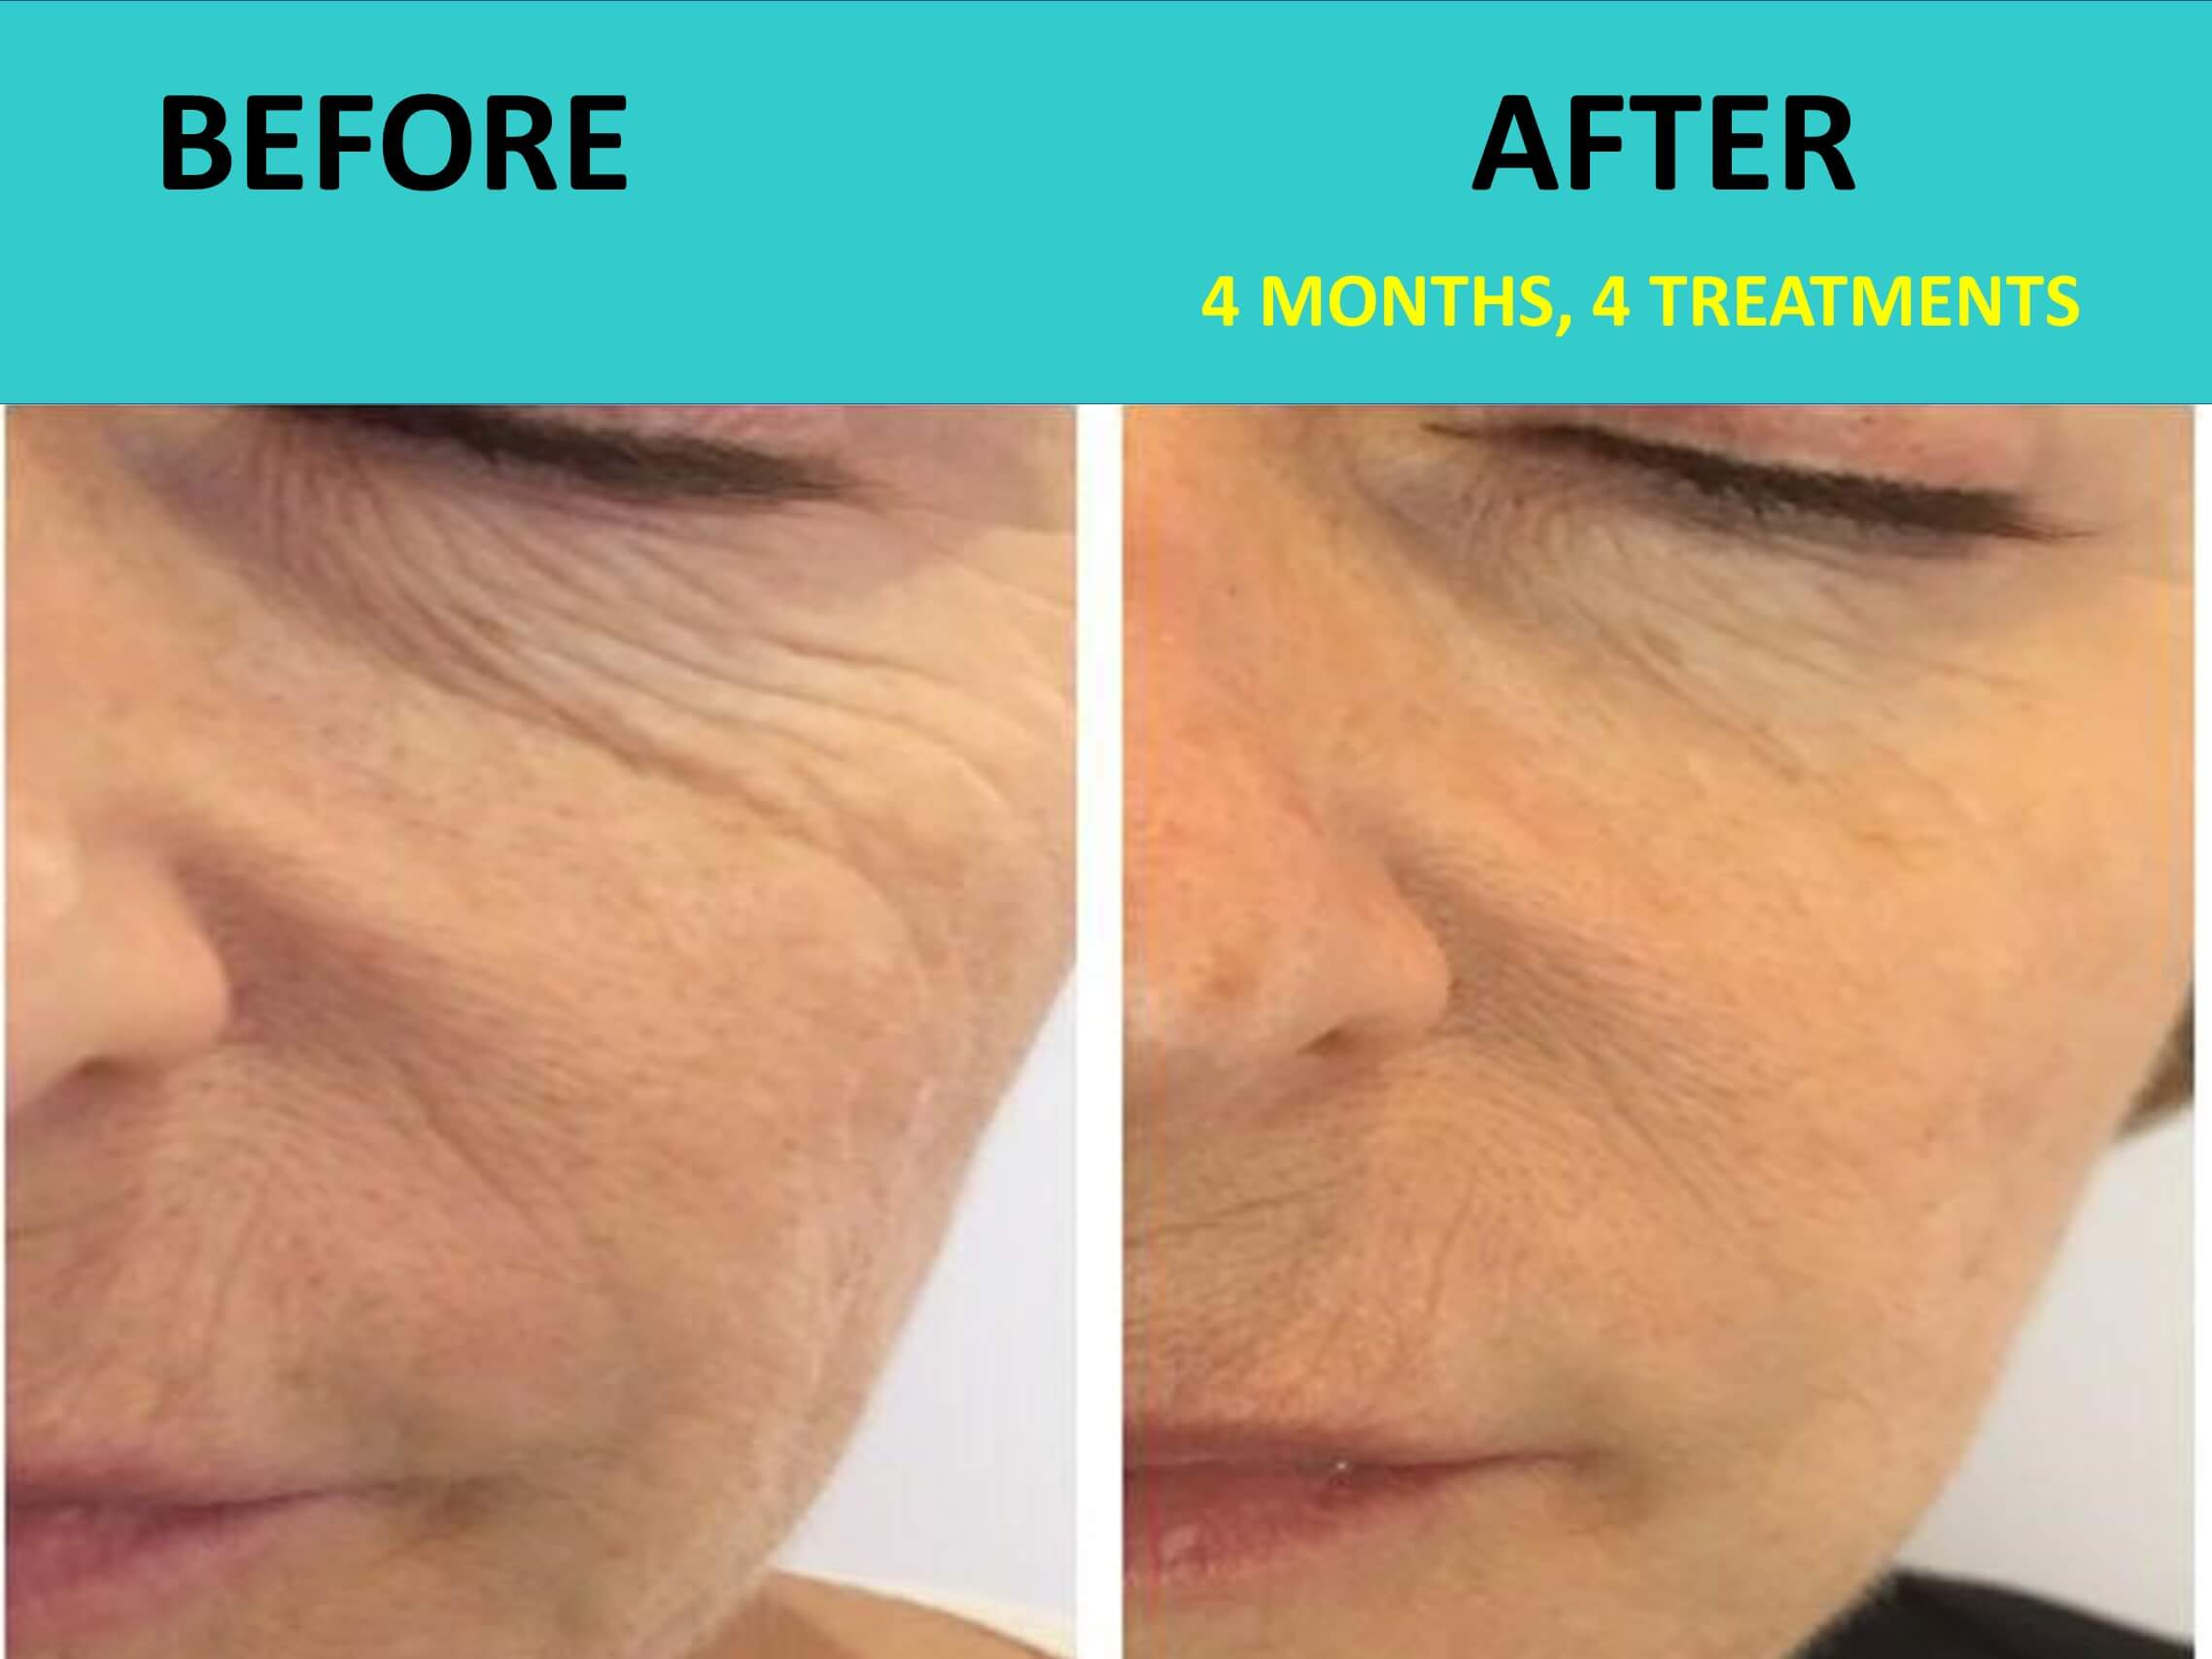 New Face after 4 treatments - incredible wrinkle removal in action!